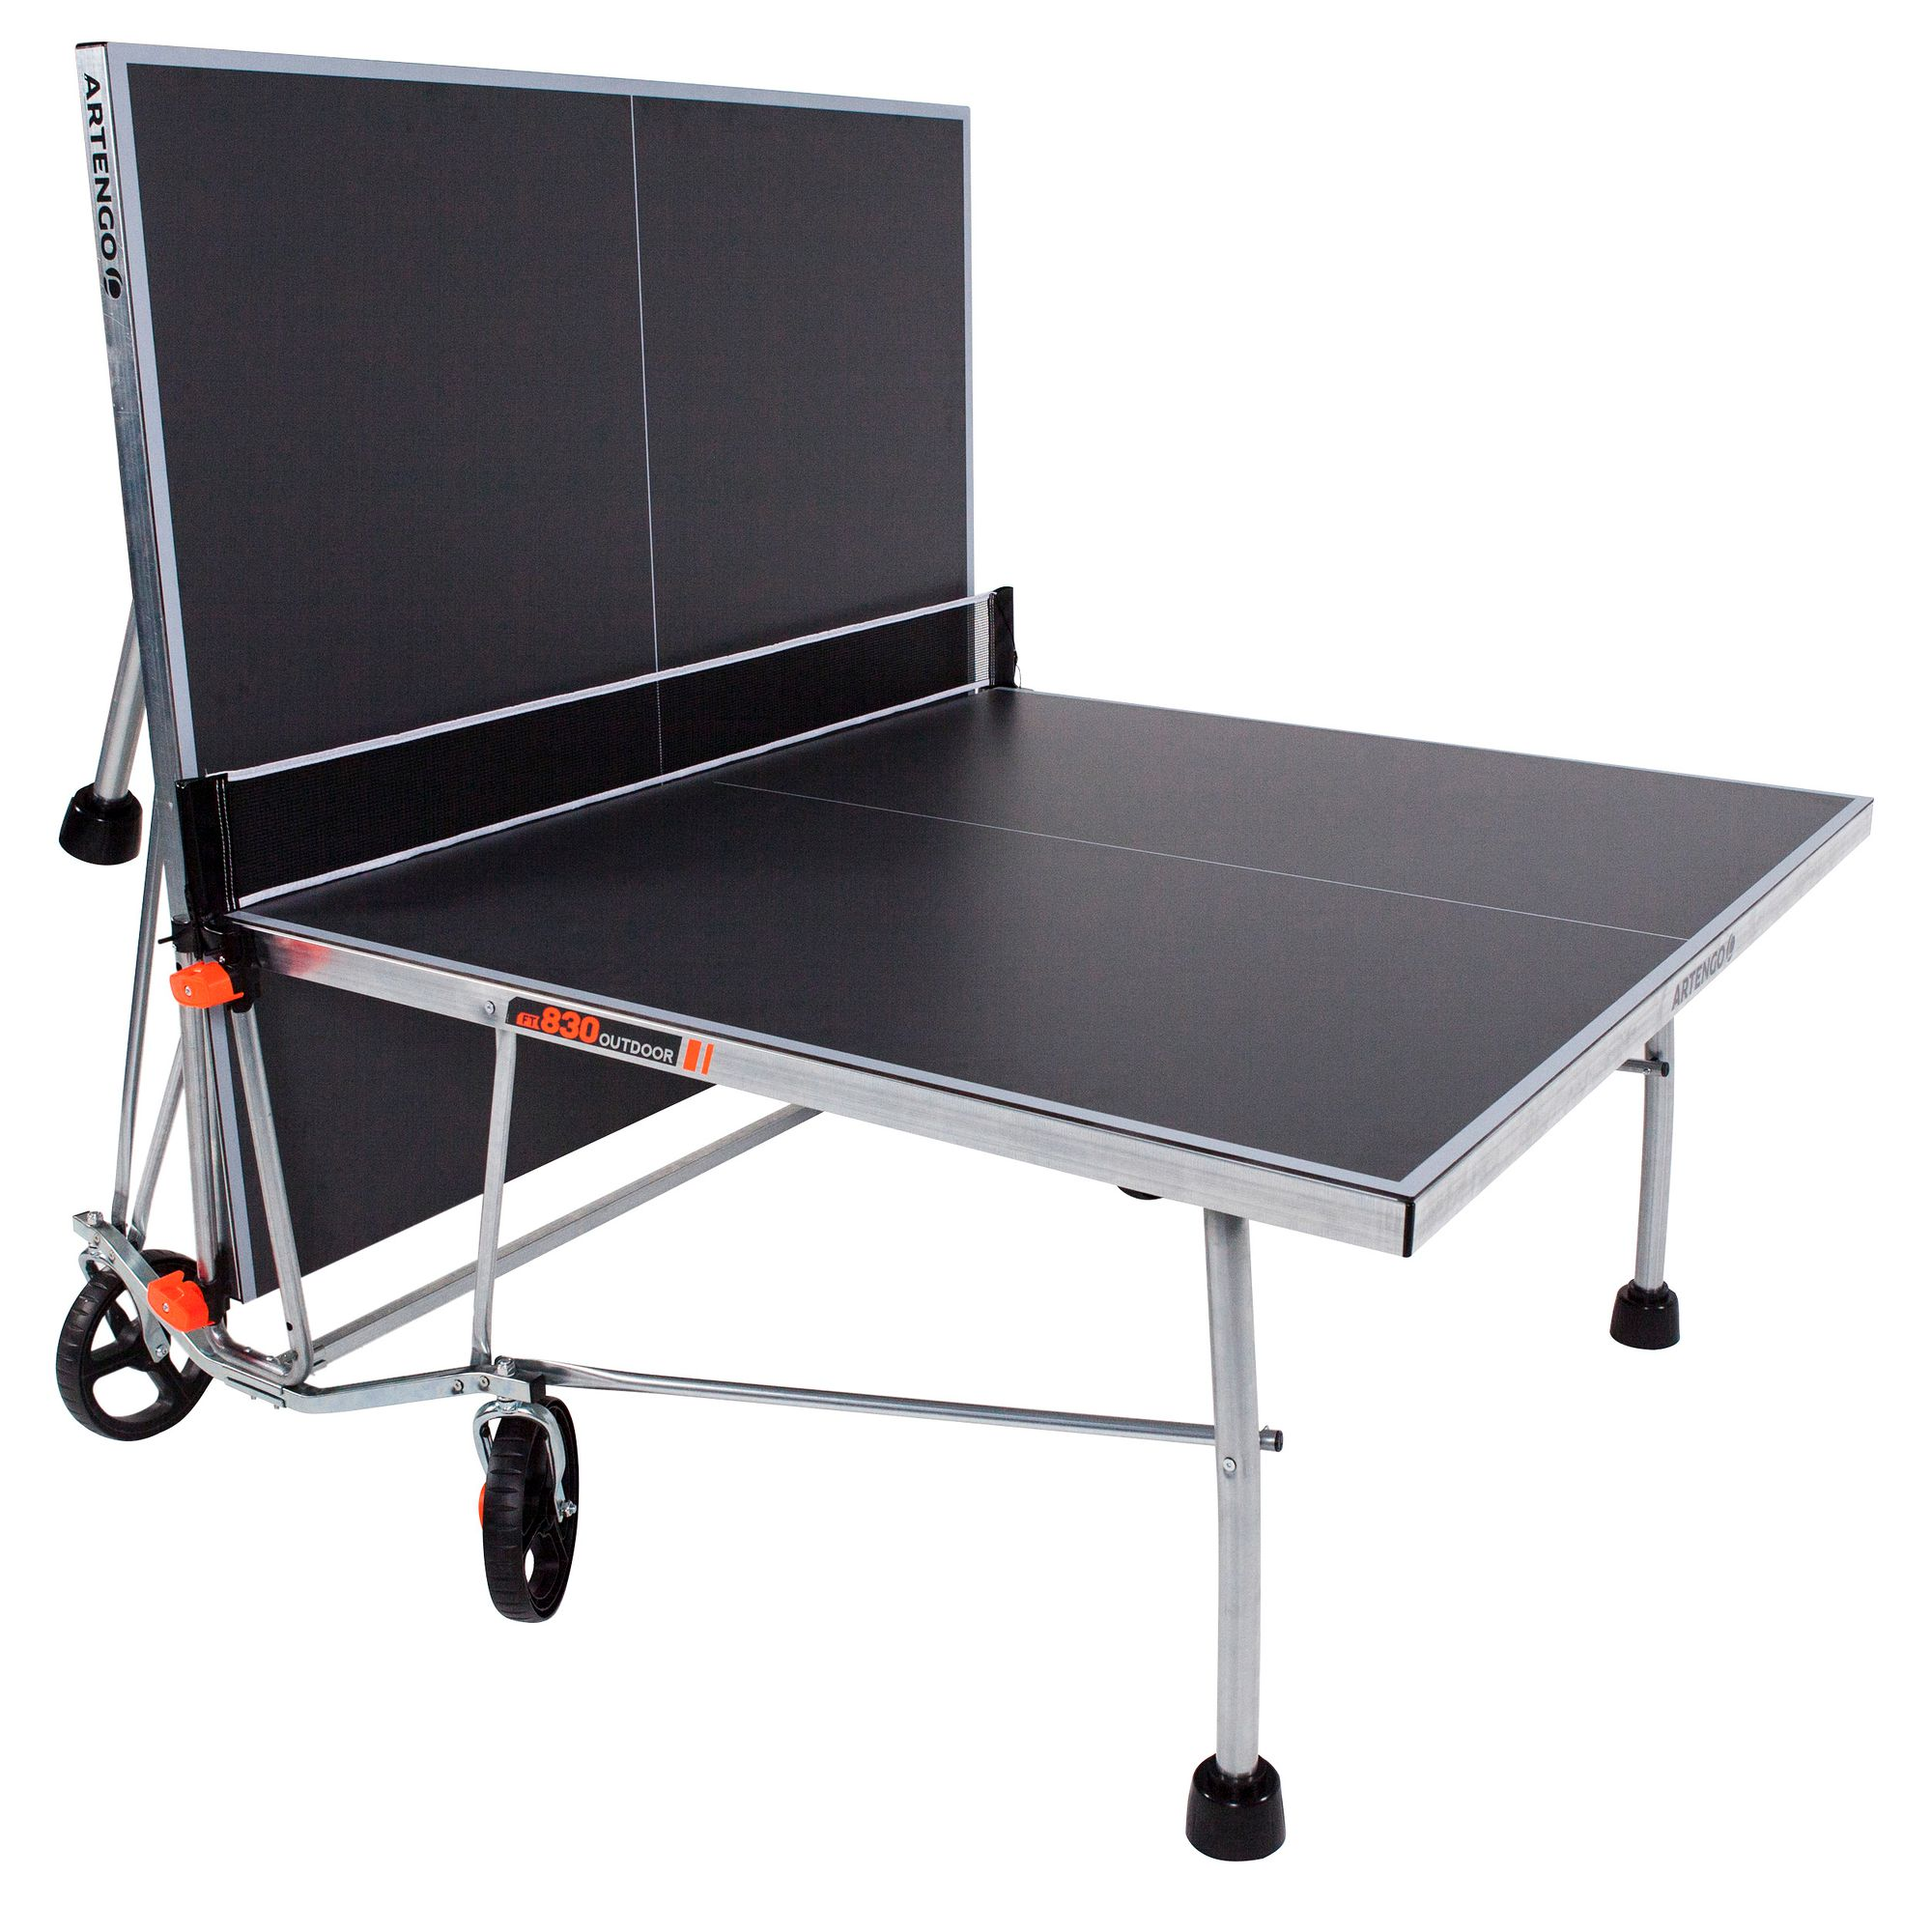 Table de tennis de table artengo ft830 outdoor clubs - Table de ping pong exterieur pour collectivite ...